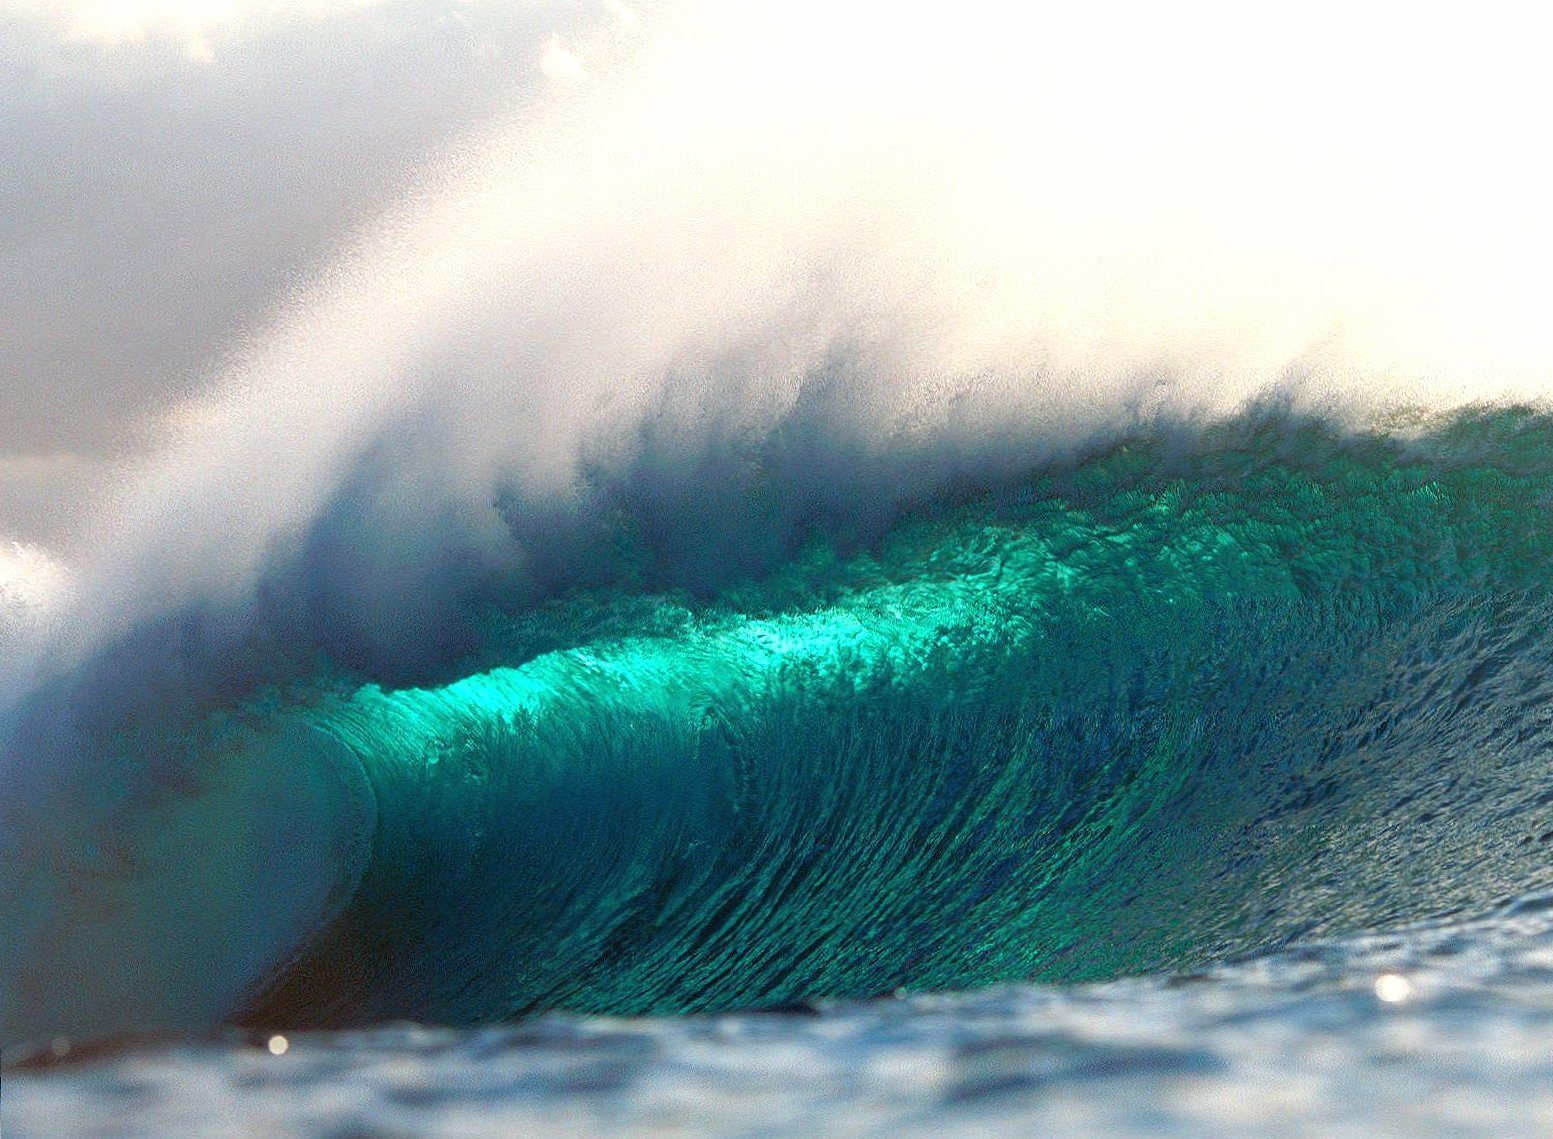 Big wave wallpapers HD quality